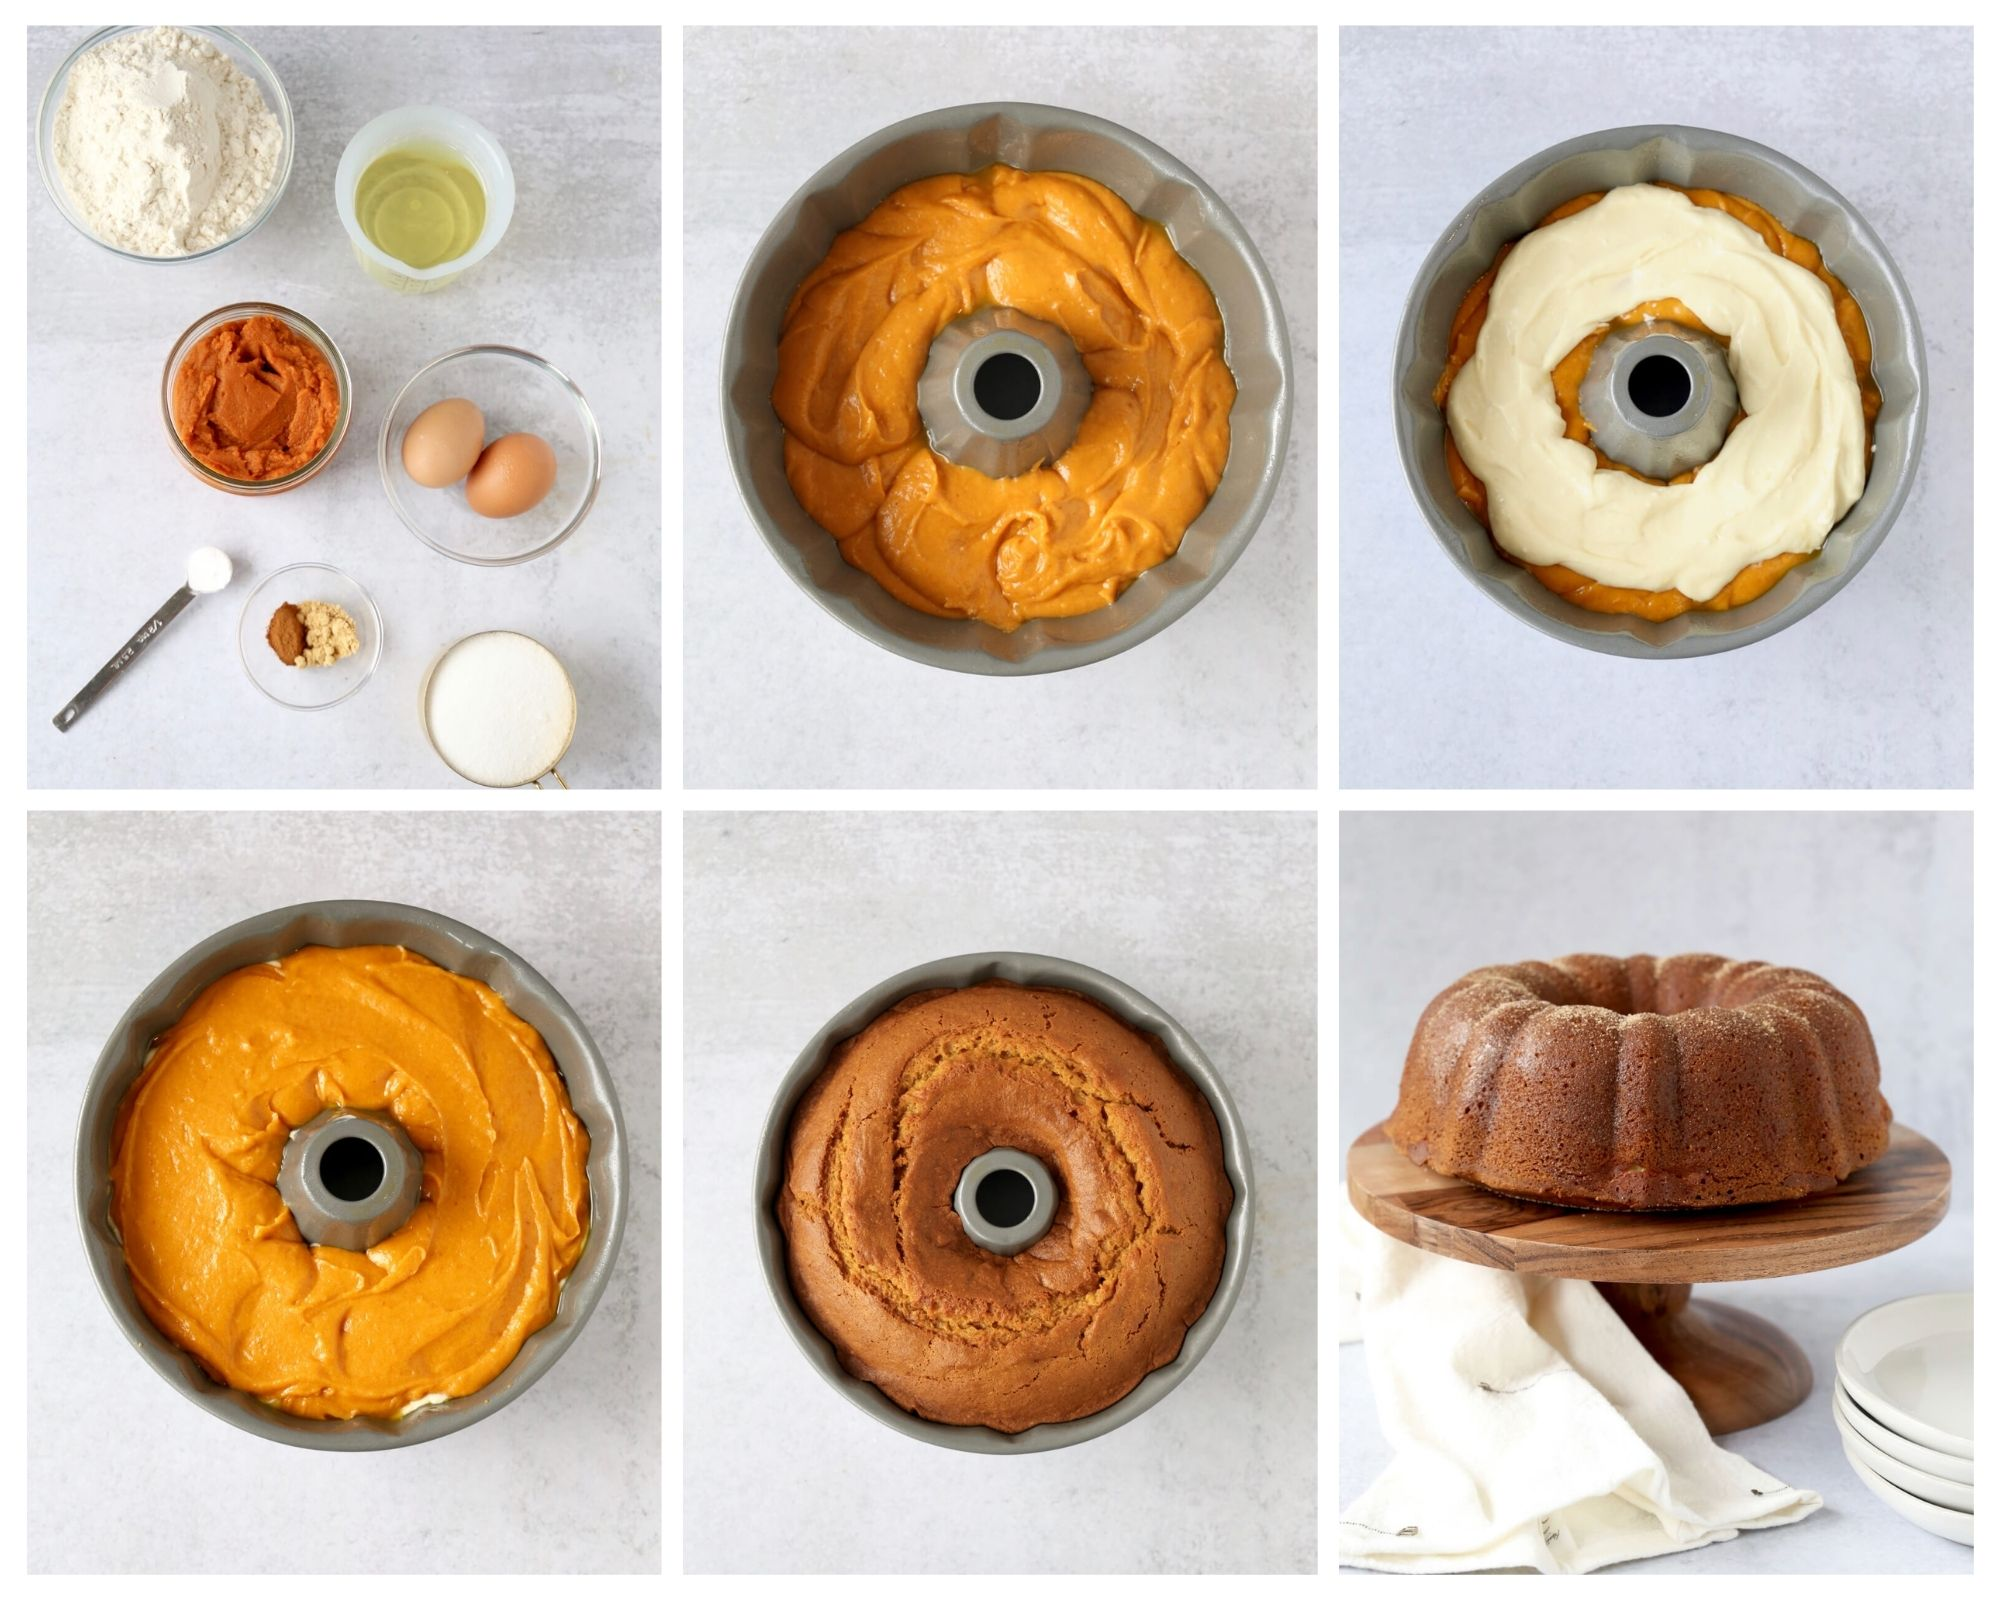 6 photos showing the pumpkin cream cheese bundt cake being made step by step